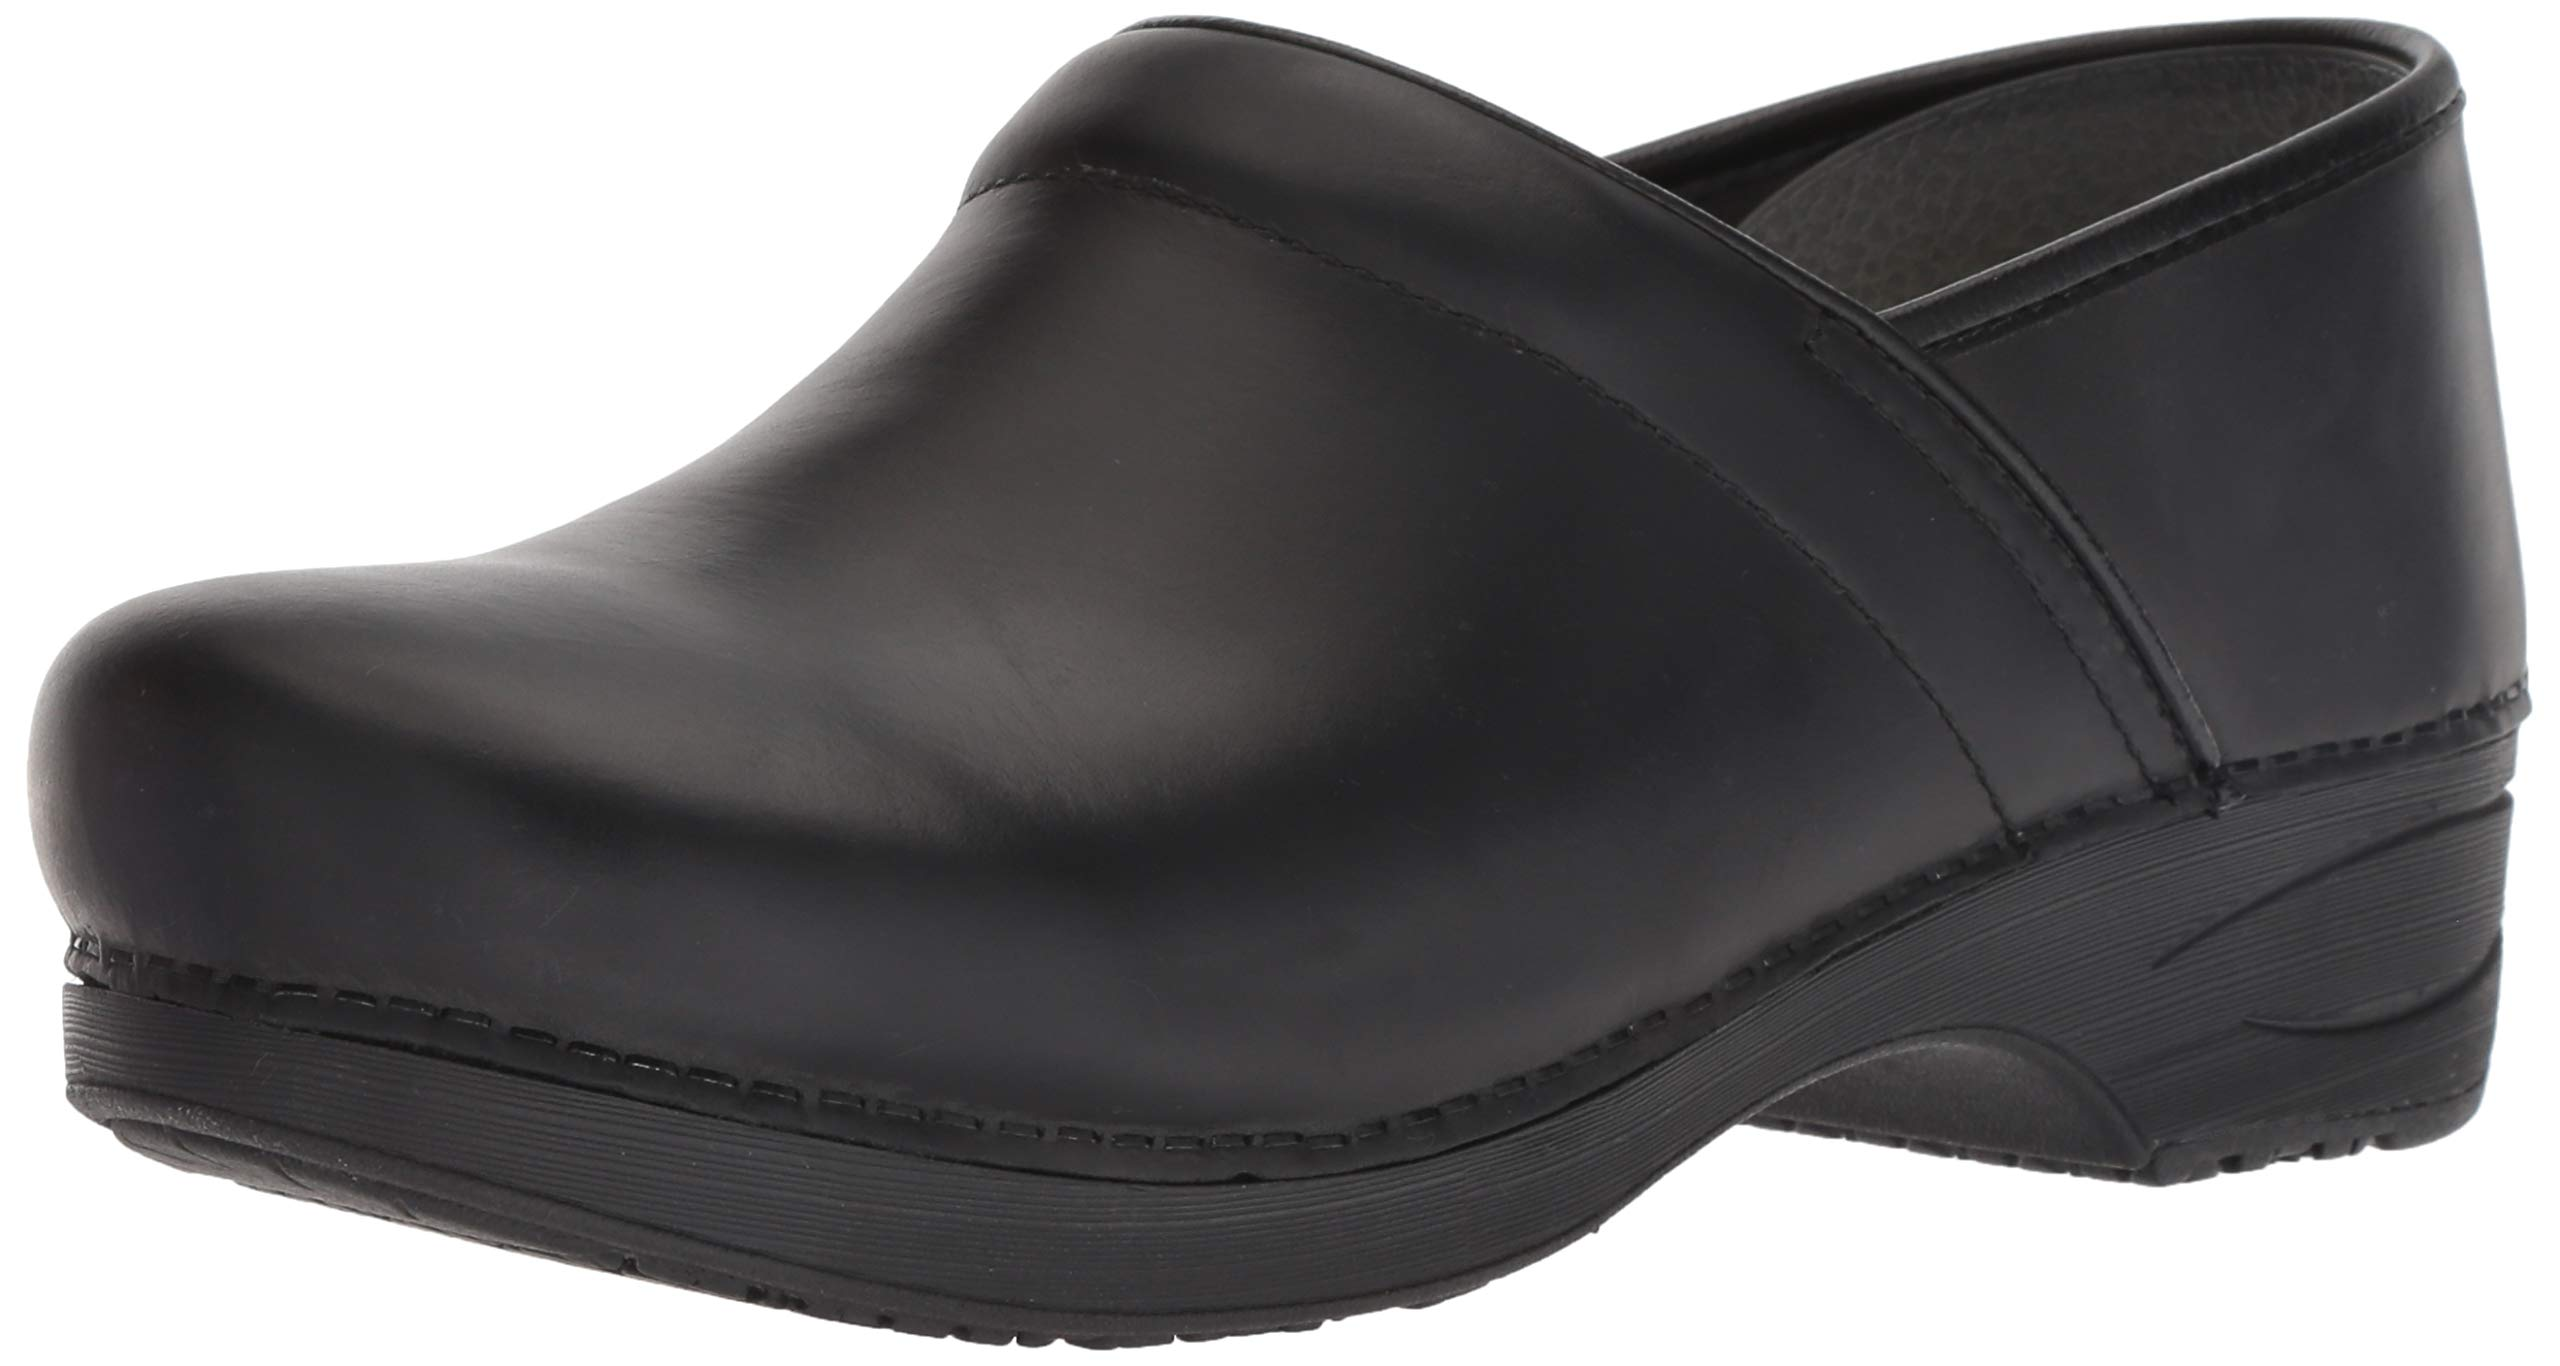 Dansko XP 2.0 Mens Clog, Black Burnished Nubuck, 43 M EU (9.5-10 US)